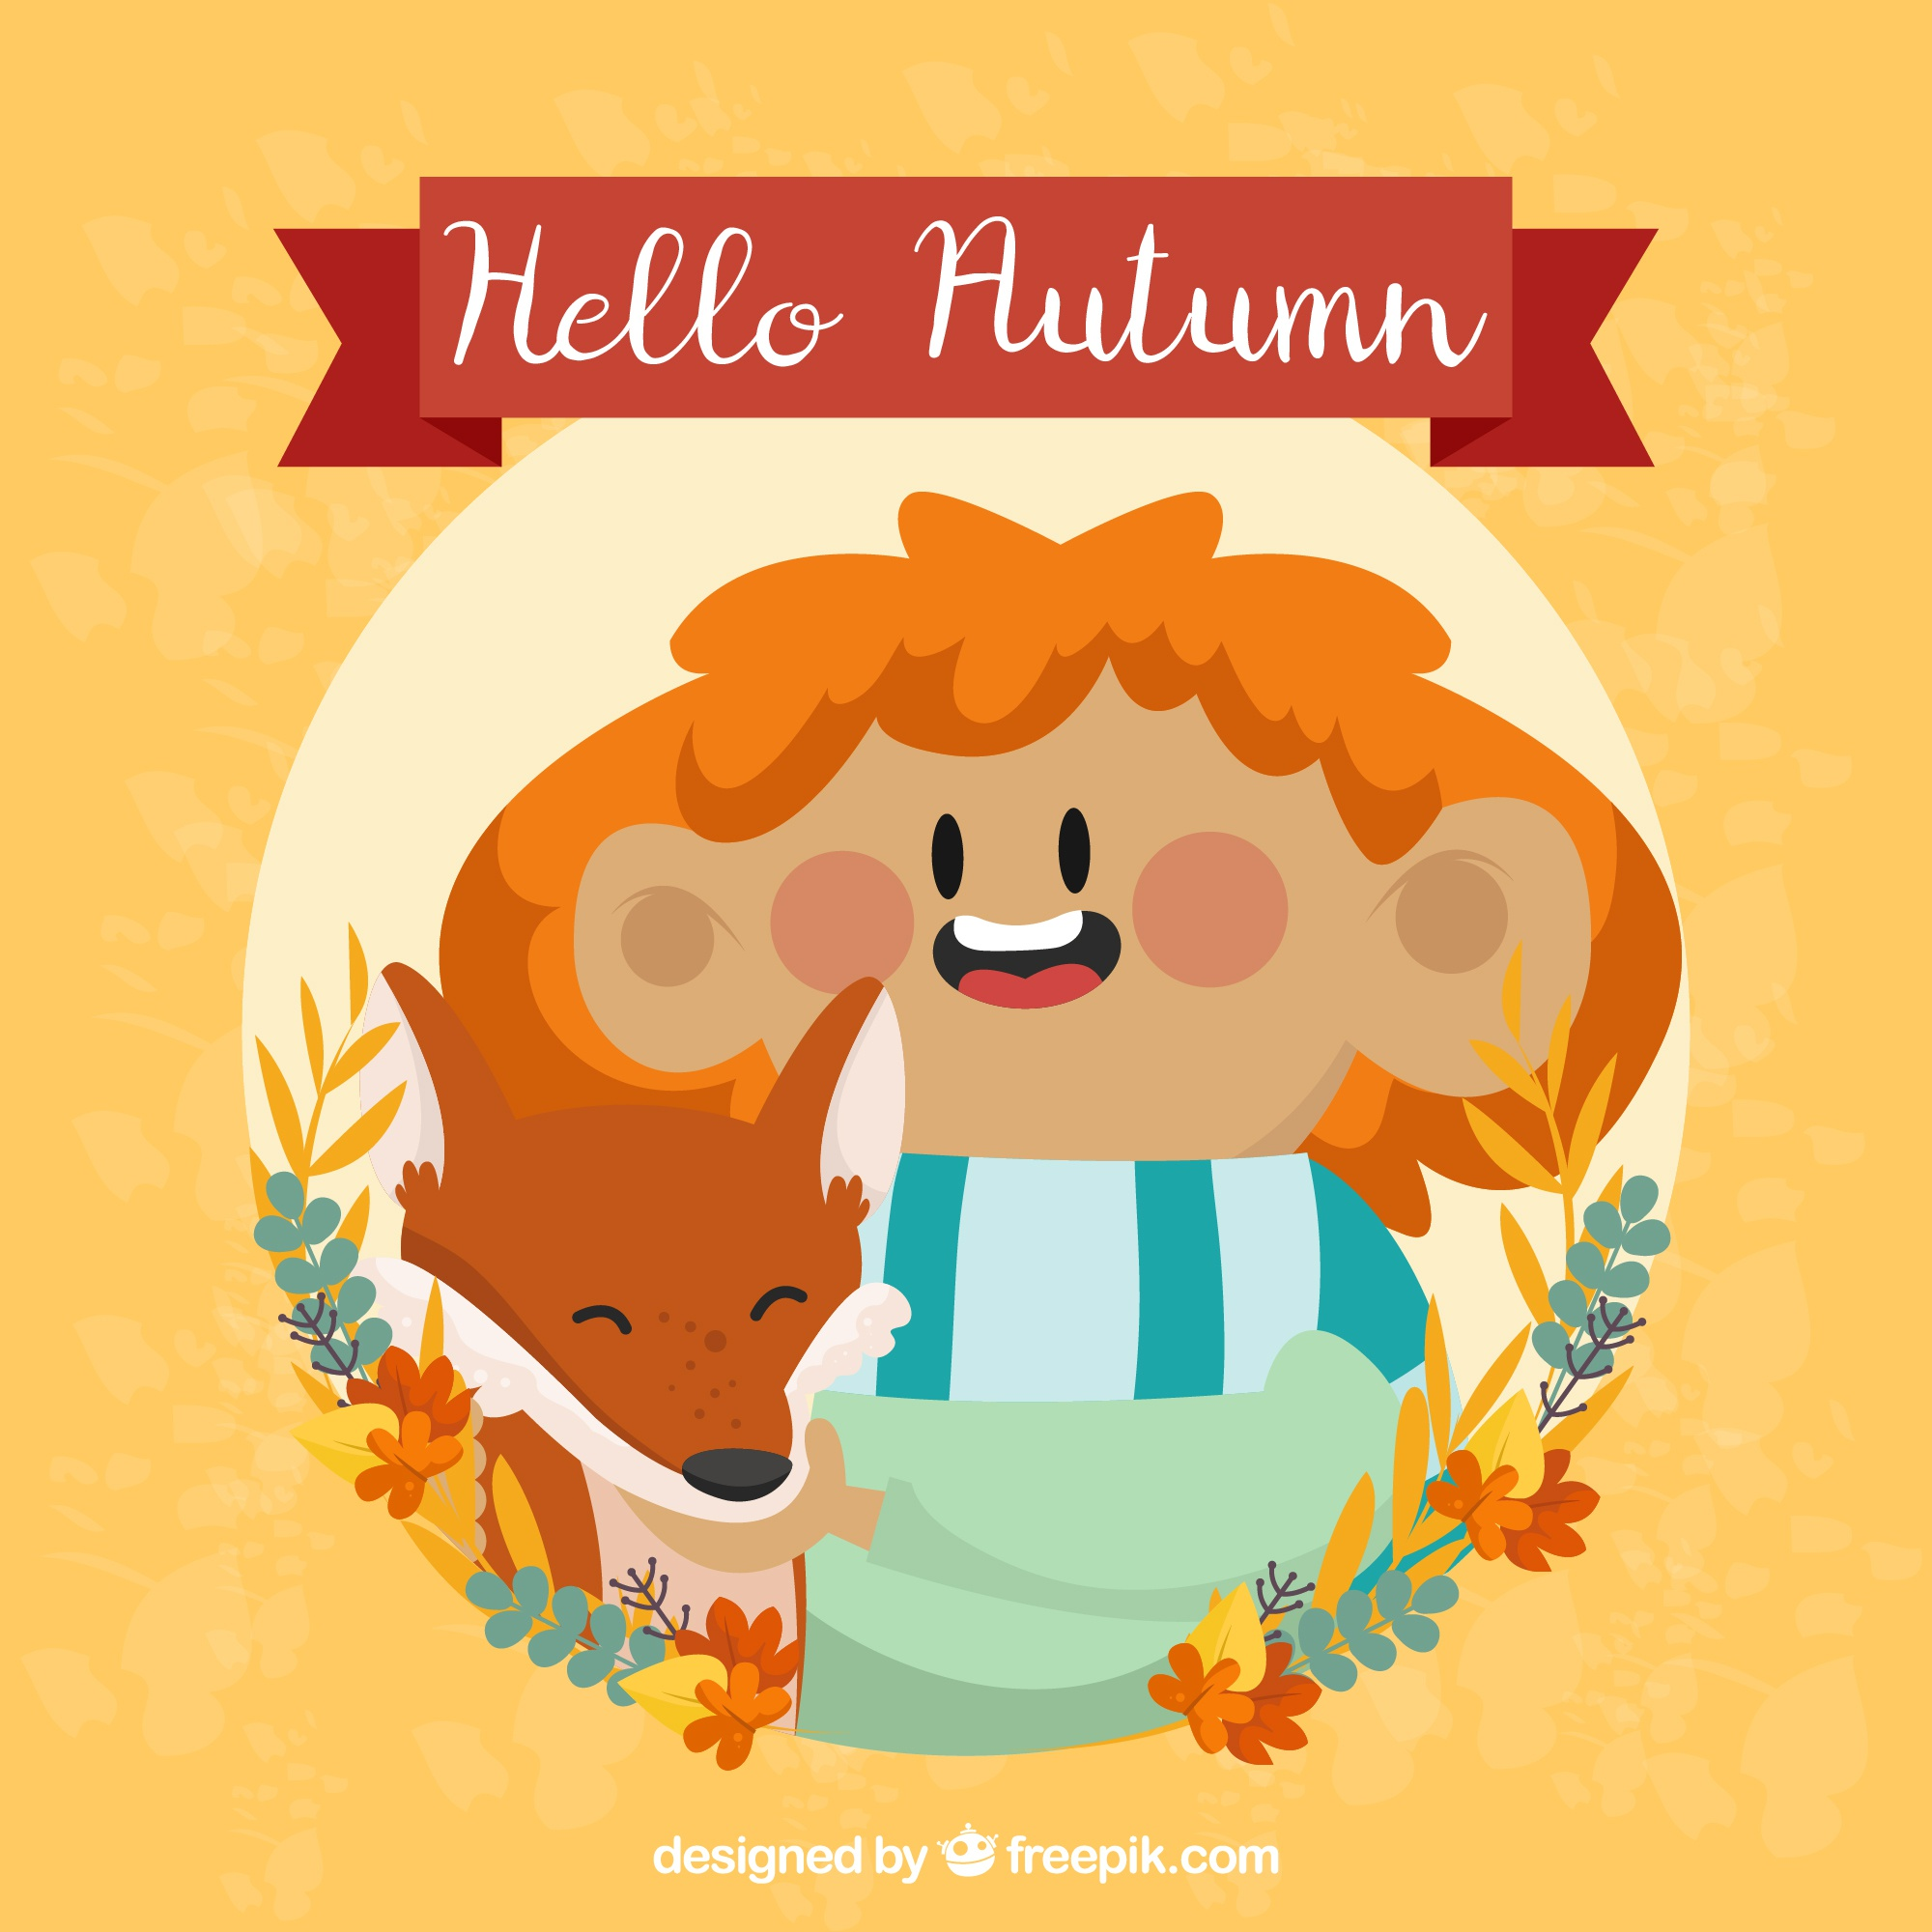 Autumn background with smiley boy and fox